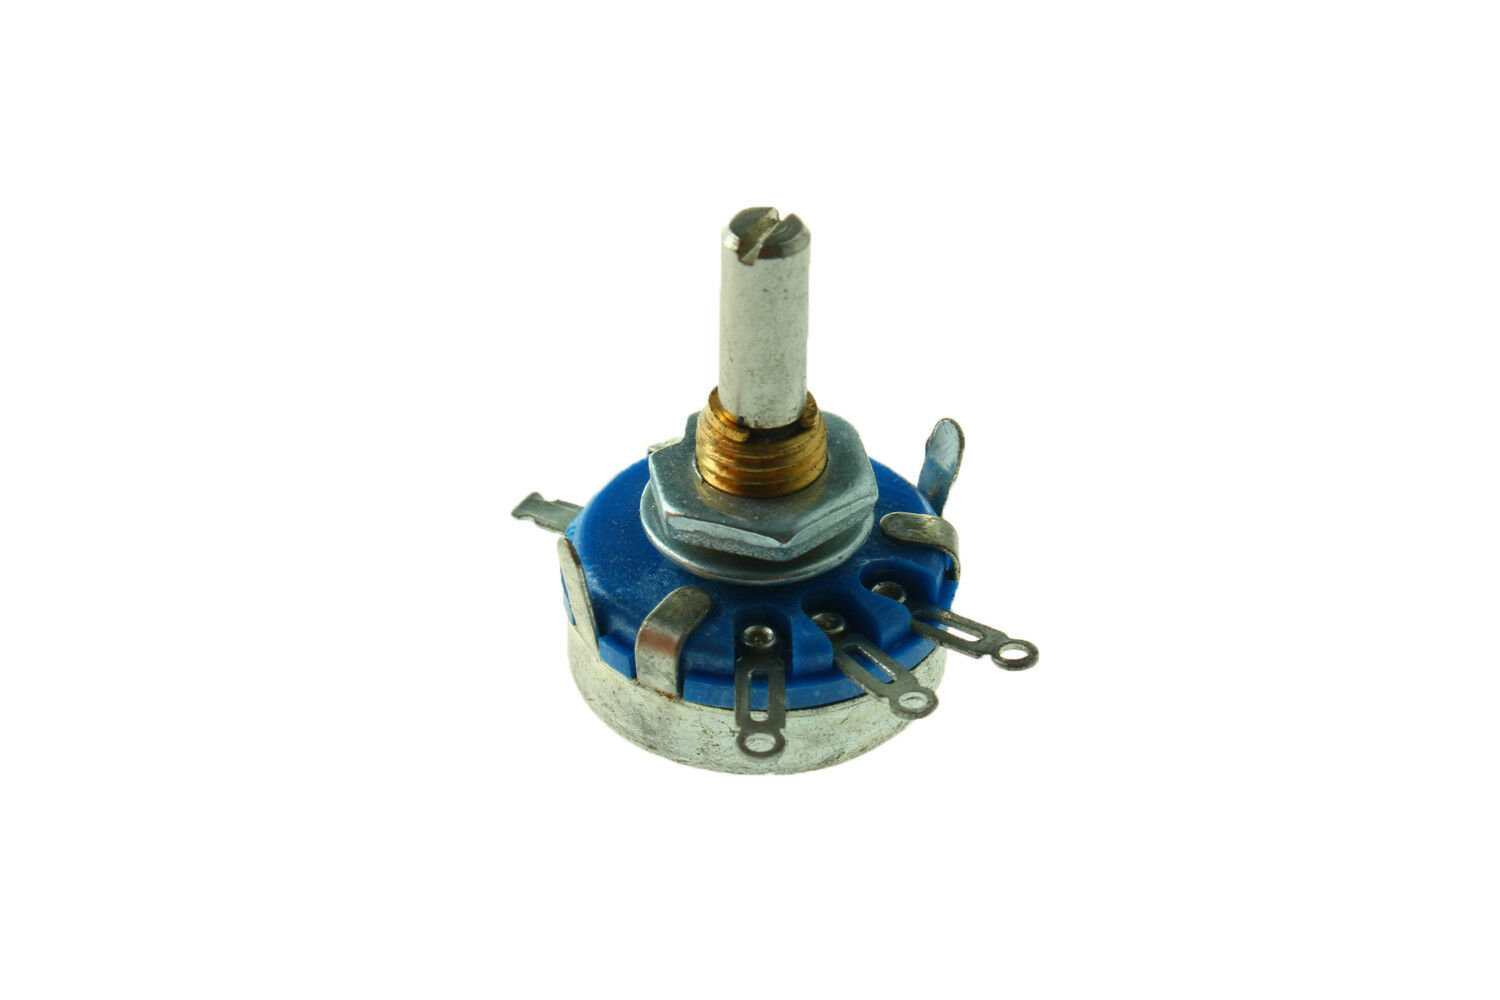 1pcs WH5-1A 22K Ohm 4mm Shaft 3 Terminal Linear Taper Rotary Potentiometer